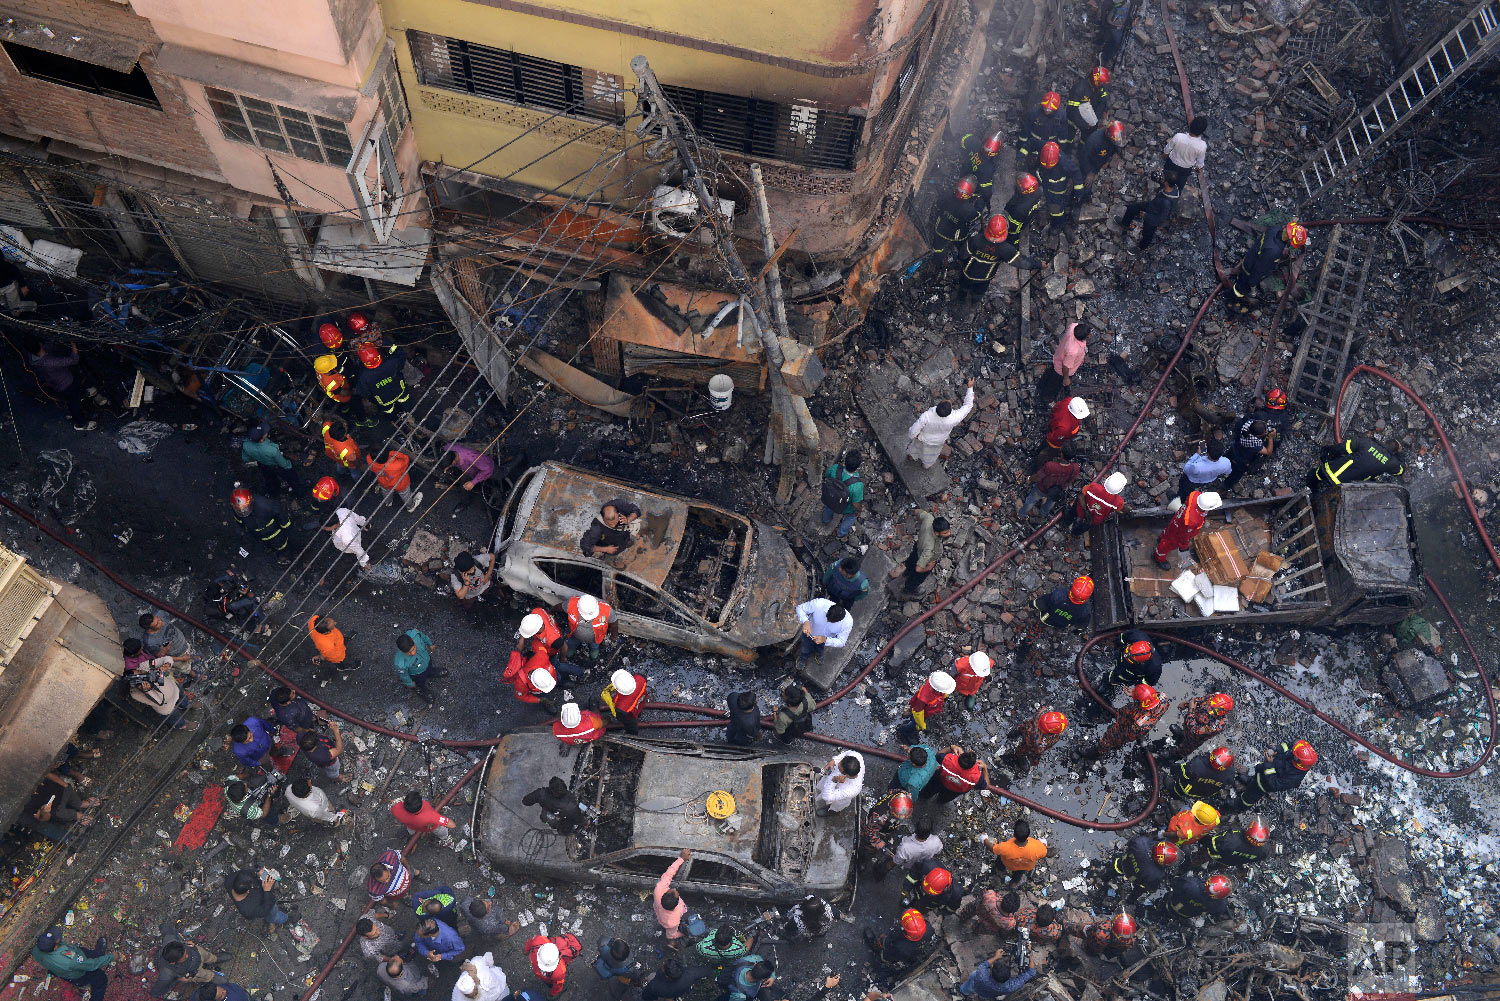 Rescuers stand at the site of a late Wednesday night fire in Dhaka, Bangladesh, Thursday, Feb. 21, 2019. (AP Photo/Mahmud Hossain Opu)